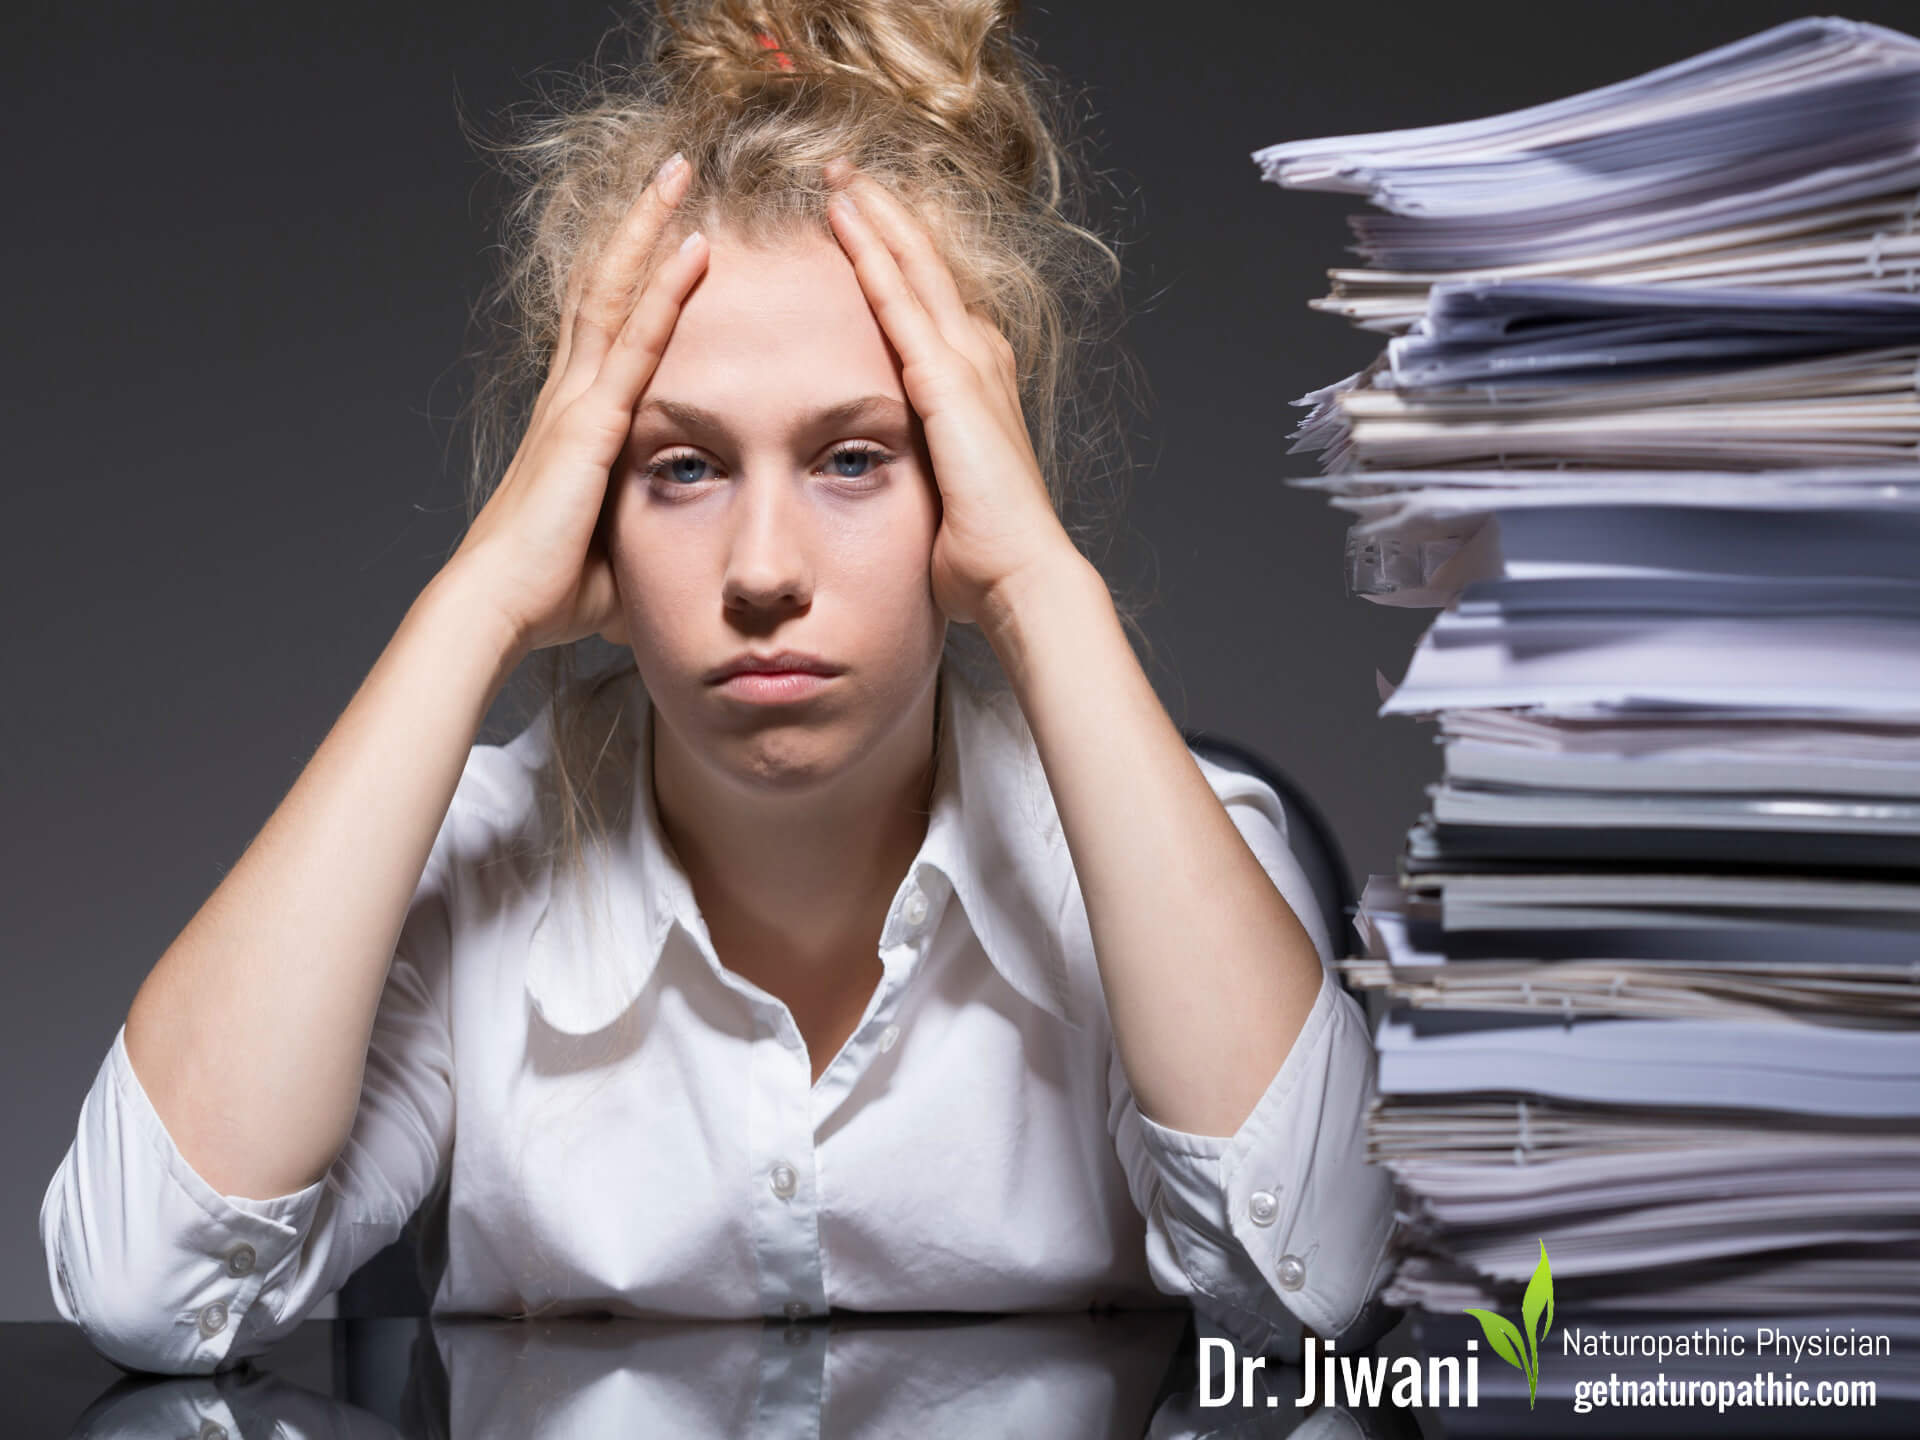 DrJiwani Stress Adrenal Fatigue Sugar the Sweet Poison The Alarming Ways Sugar Damages Your Body & Brain* | Dr. Jiwani's Naturopathic Nuggets Blog